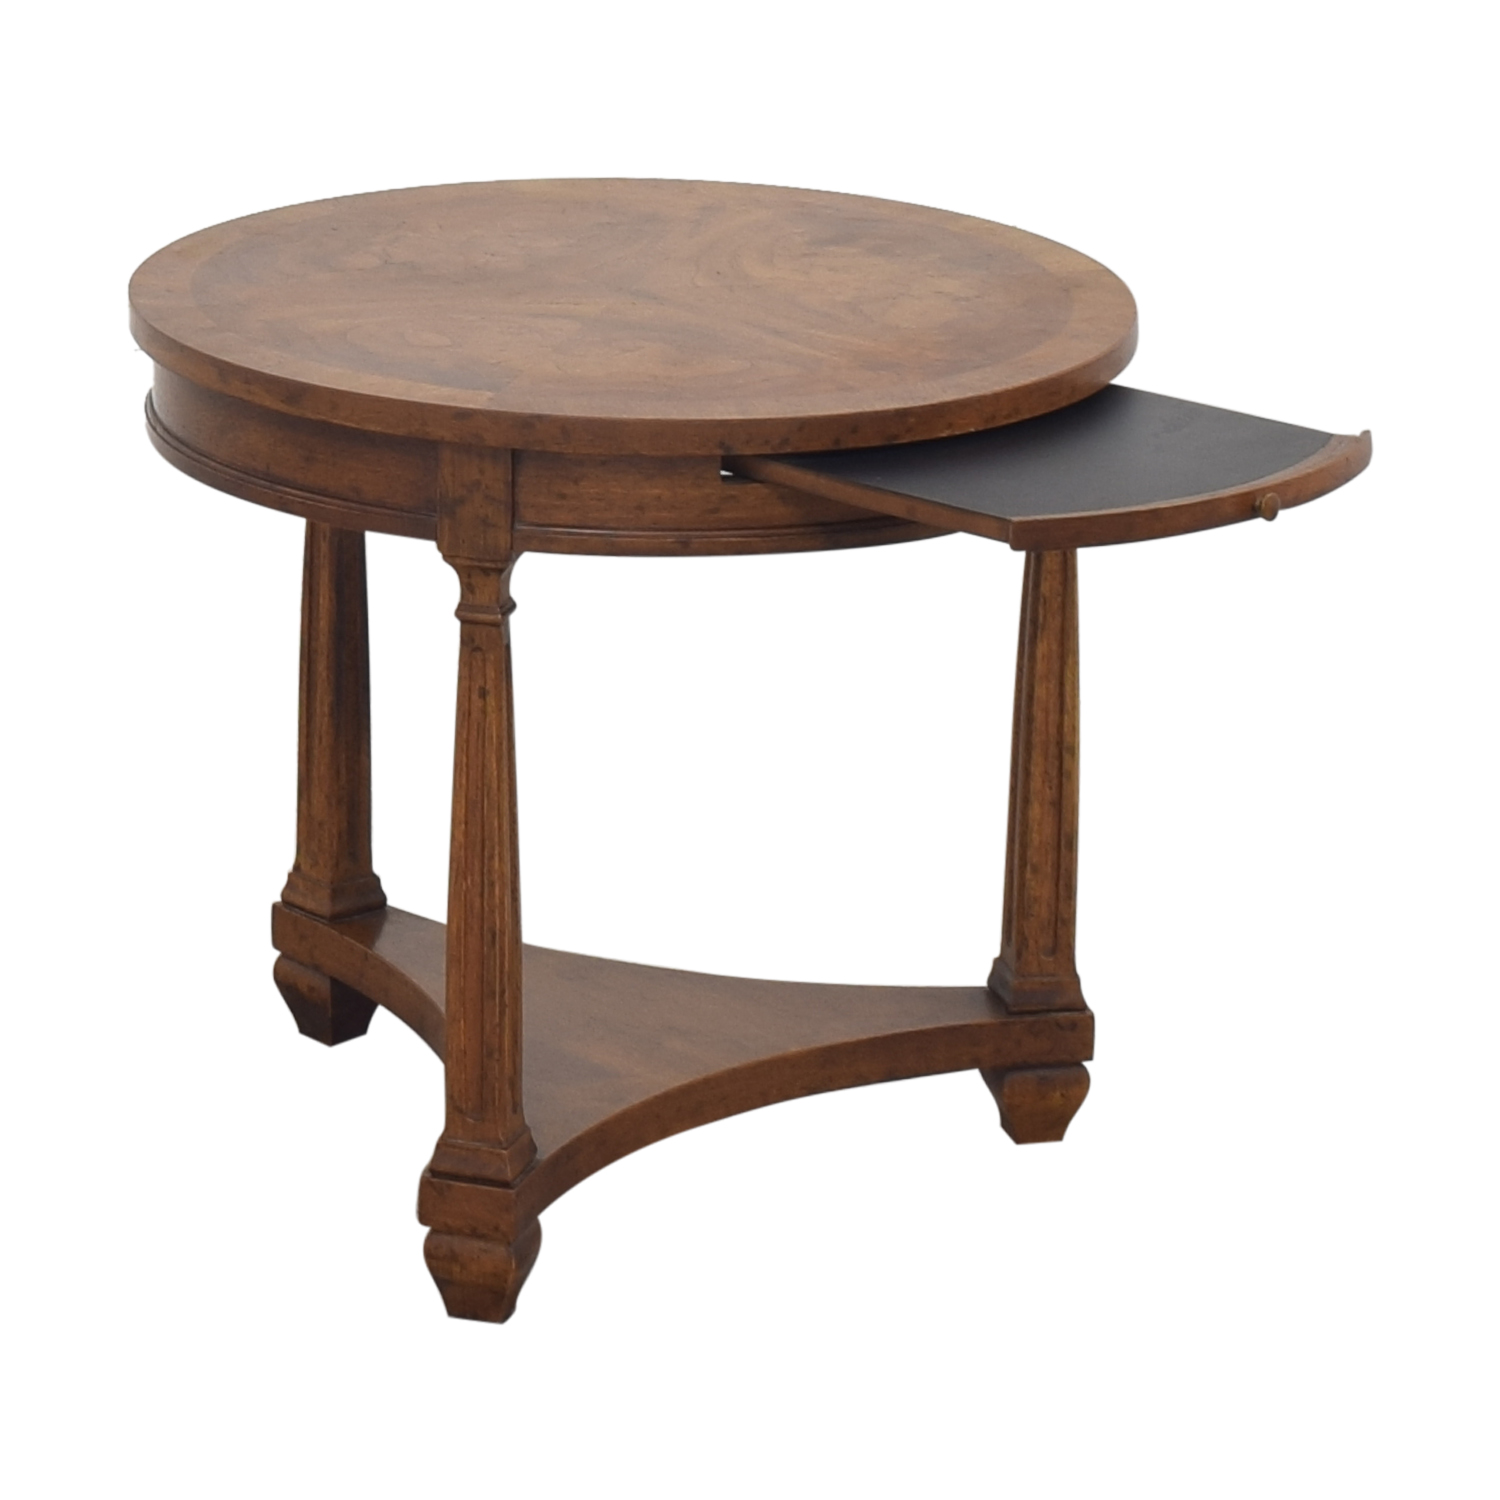 Drexel Heritage Drexel Heritage Mid Century Side Table discount